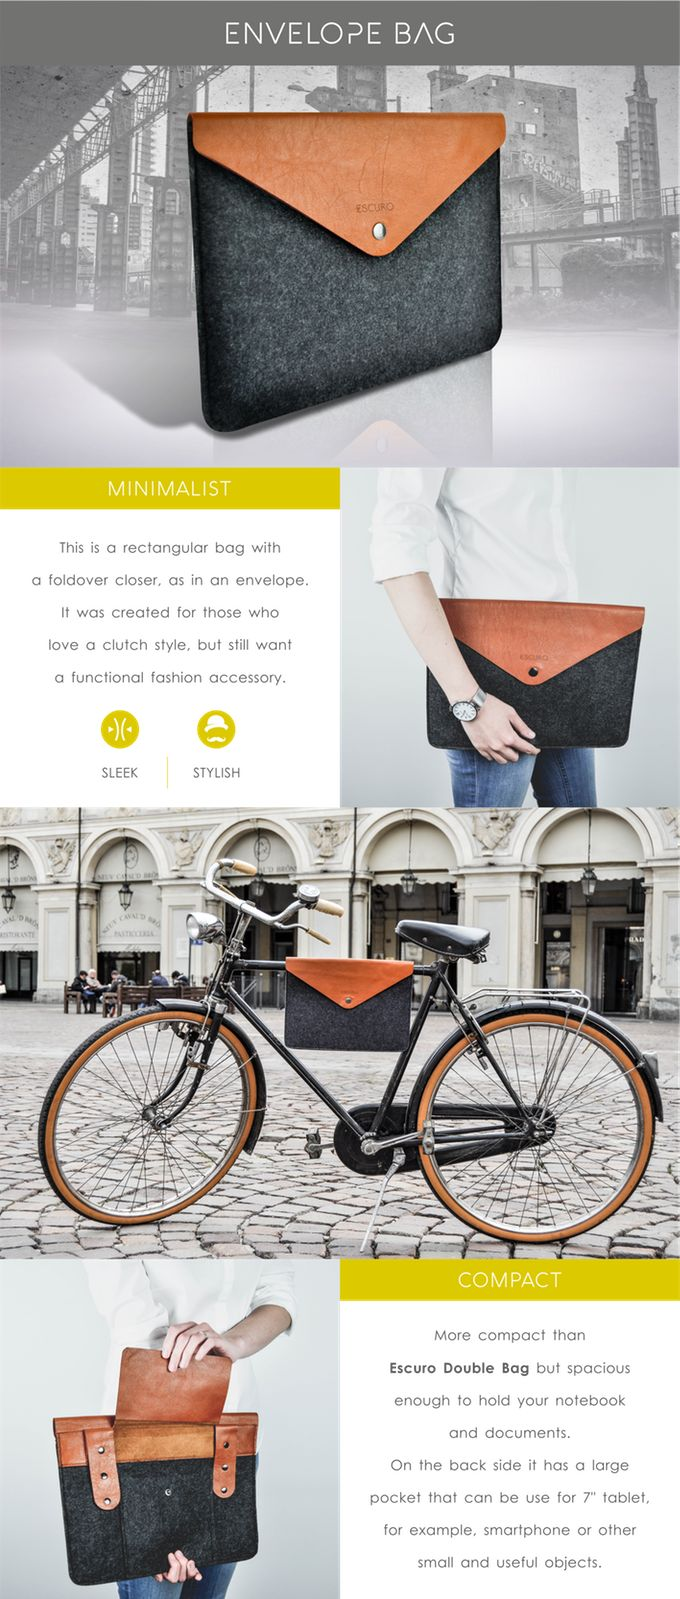 An innovative, durable and stylish bike bag. The best balance of design and functionality, created with high-quality Italian materials.